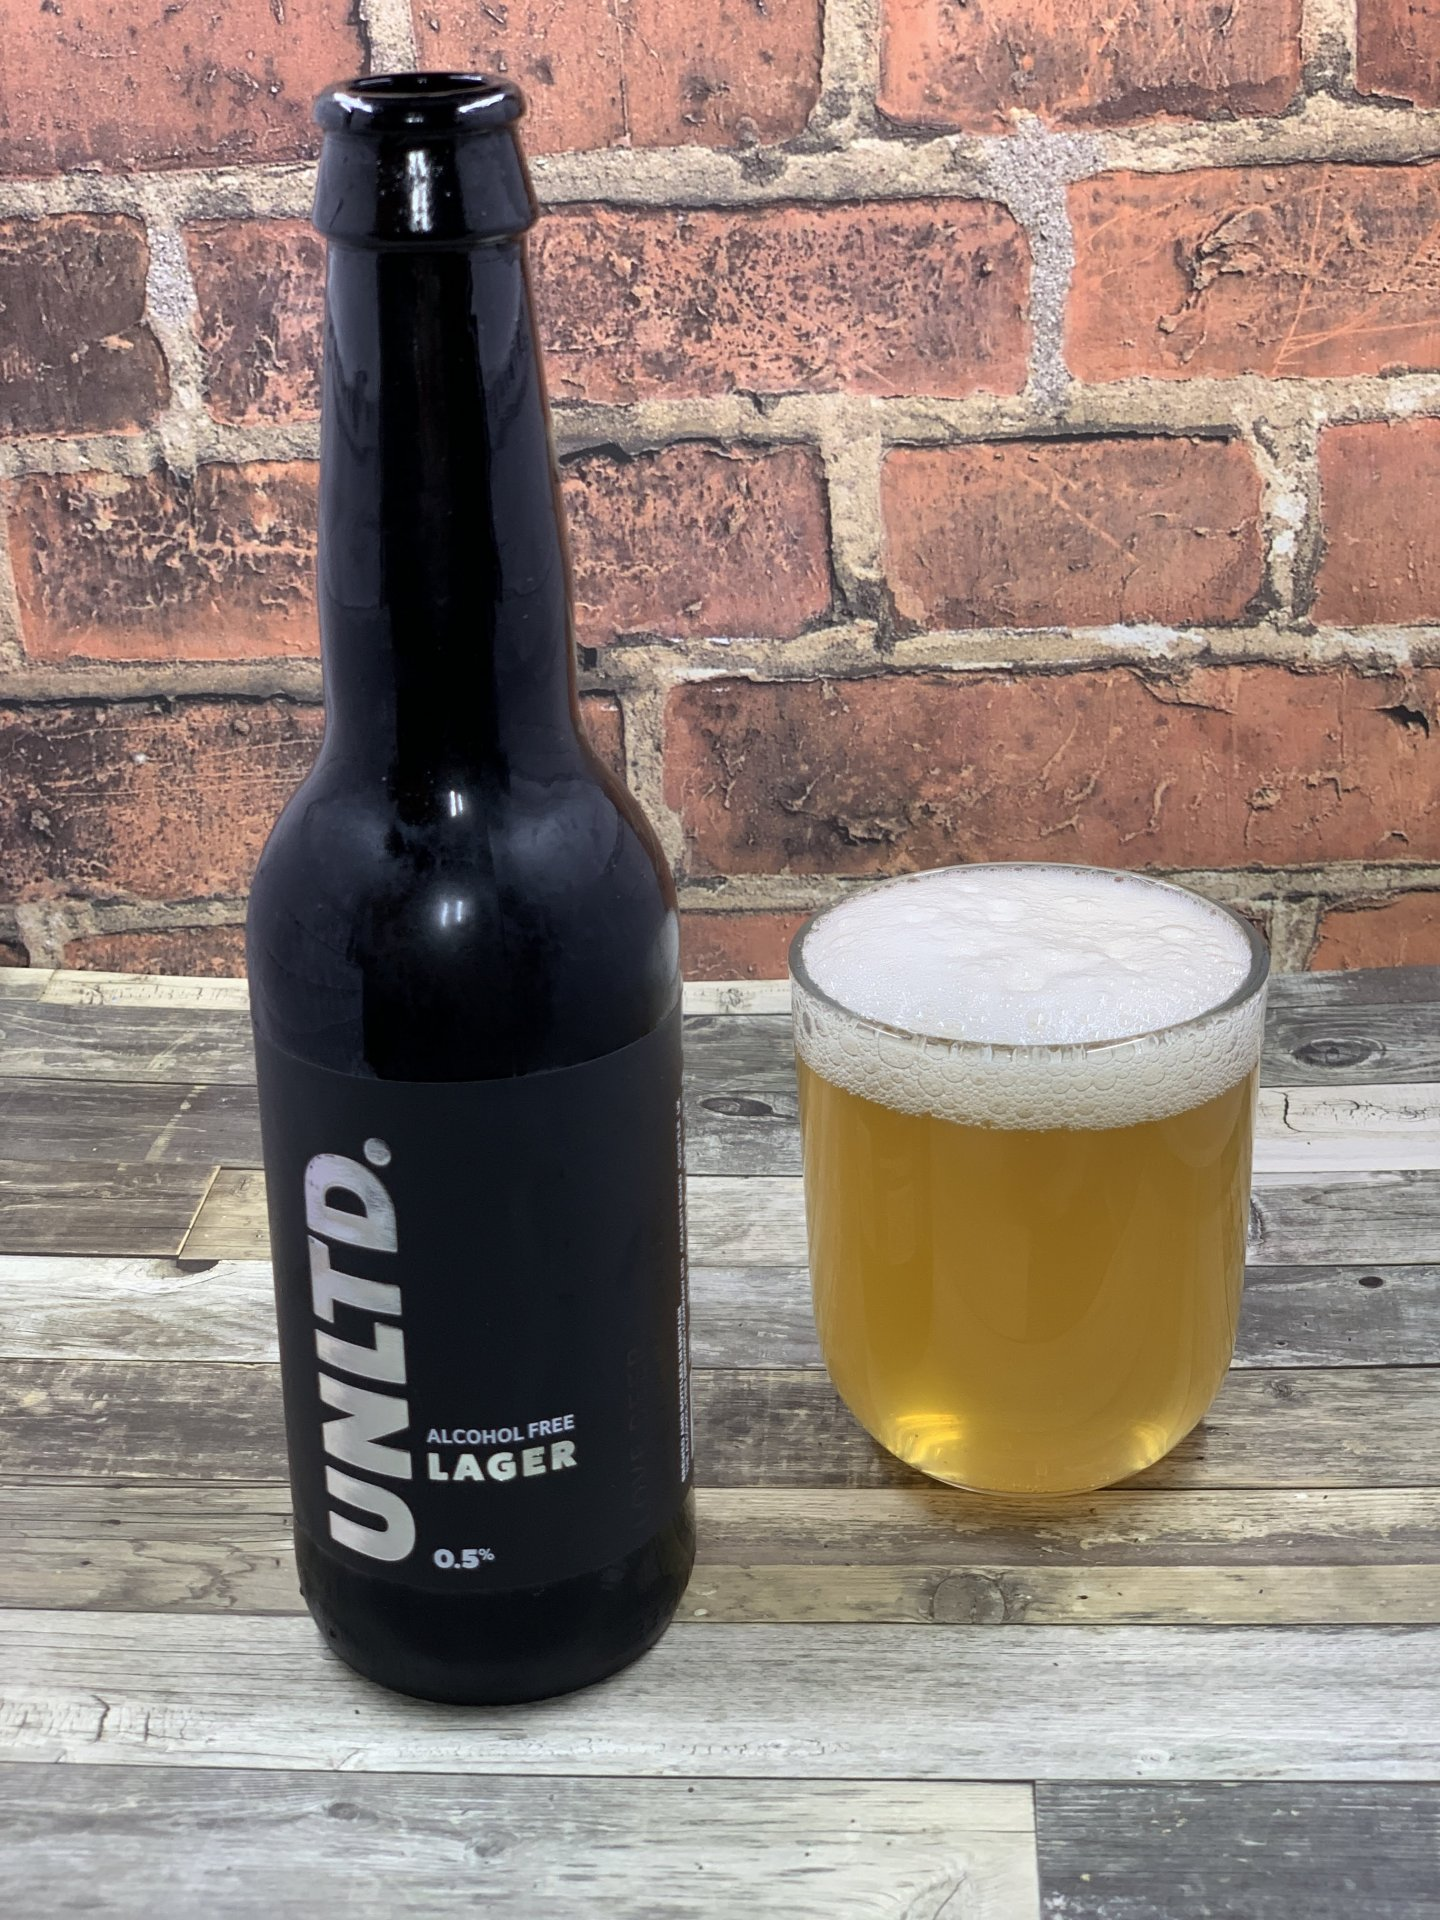 UNTLD Alcohol Free Lager Review